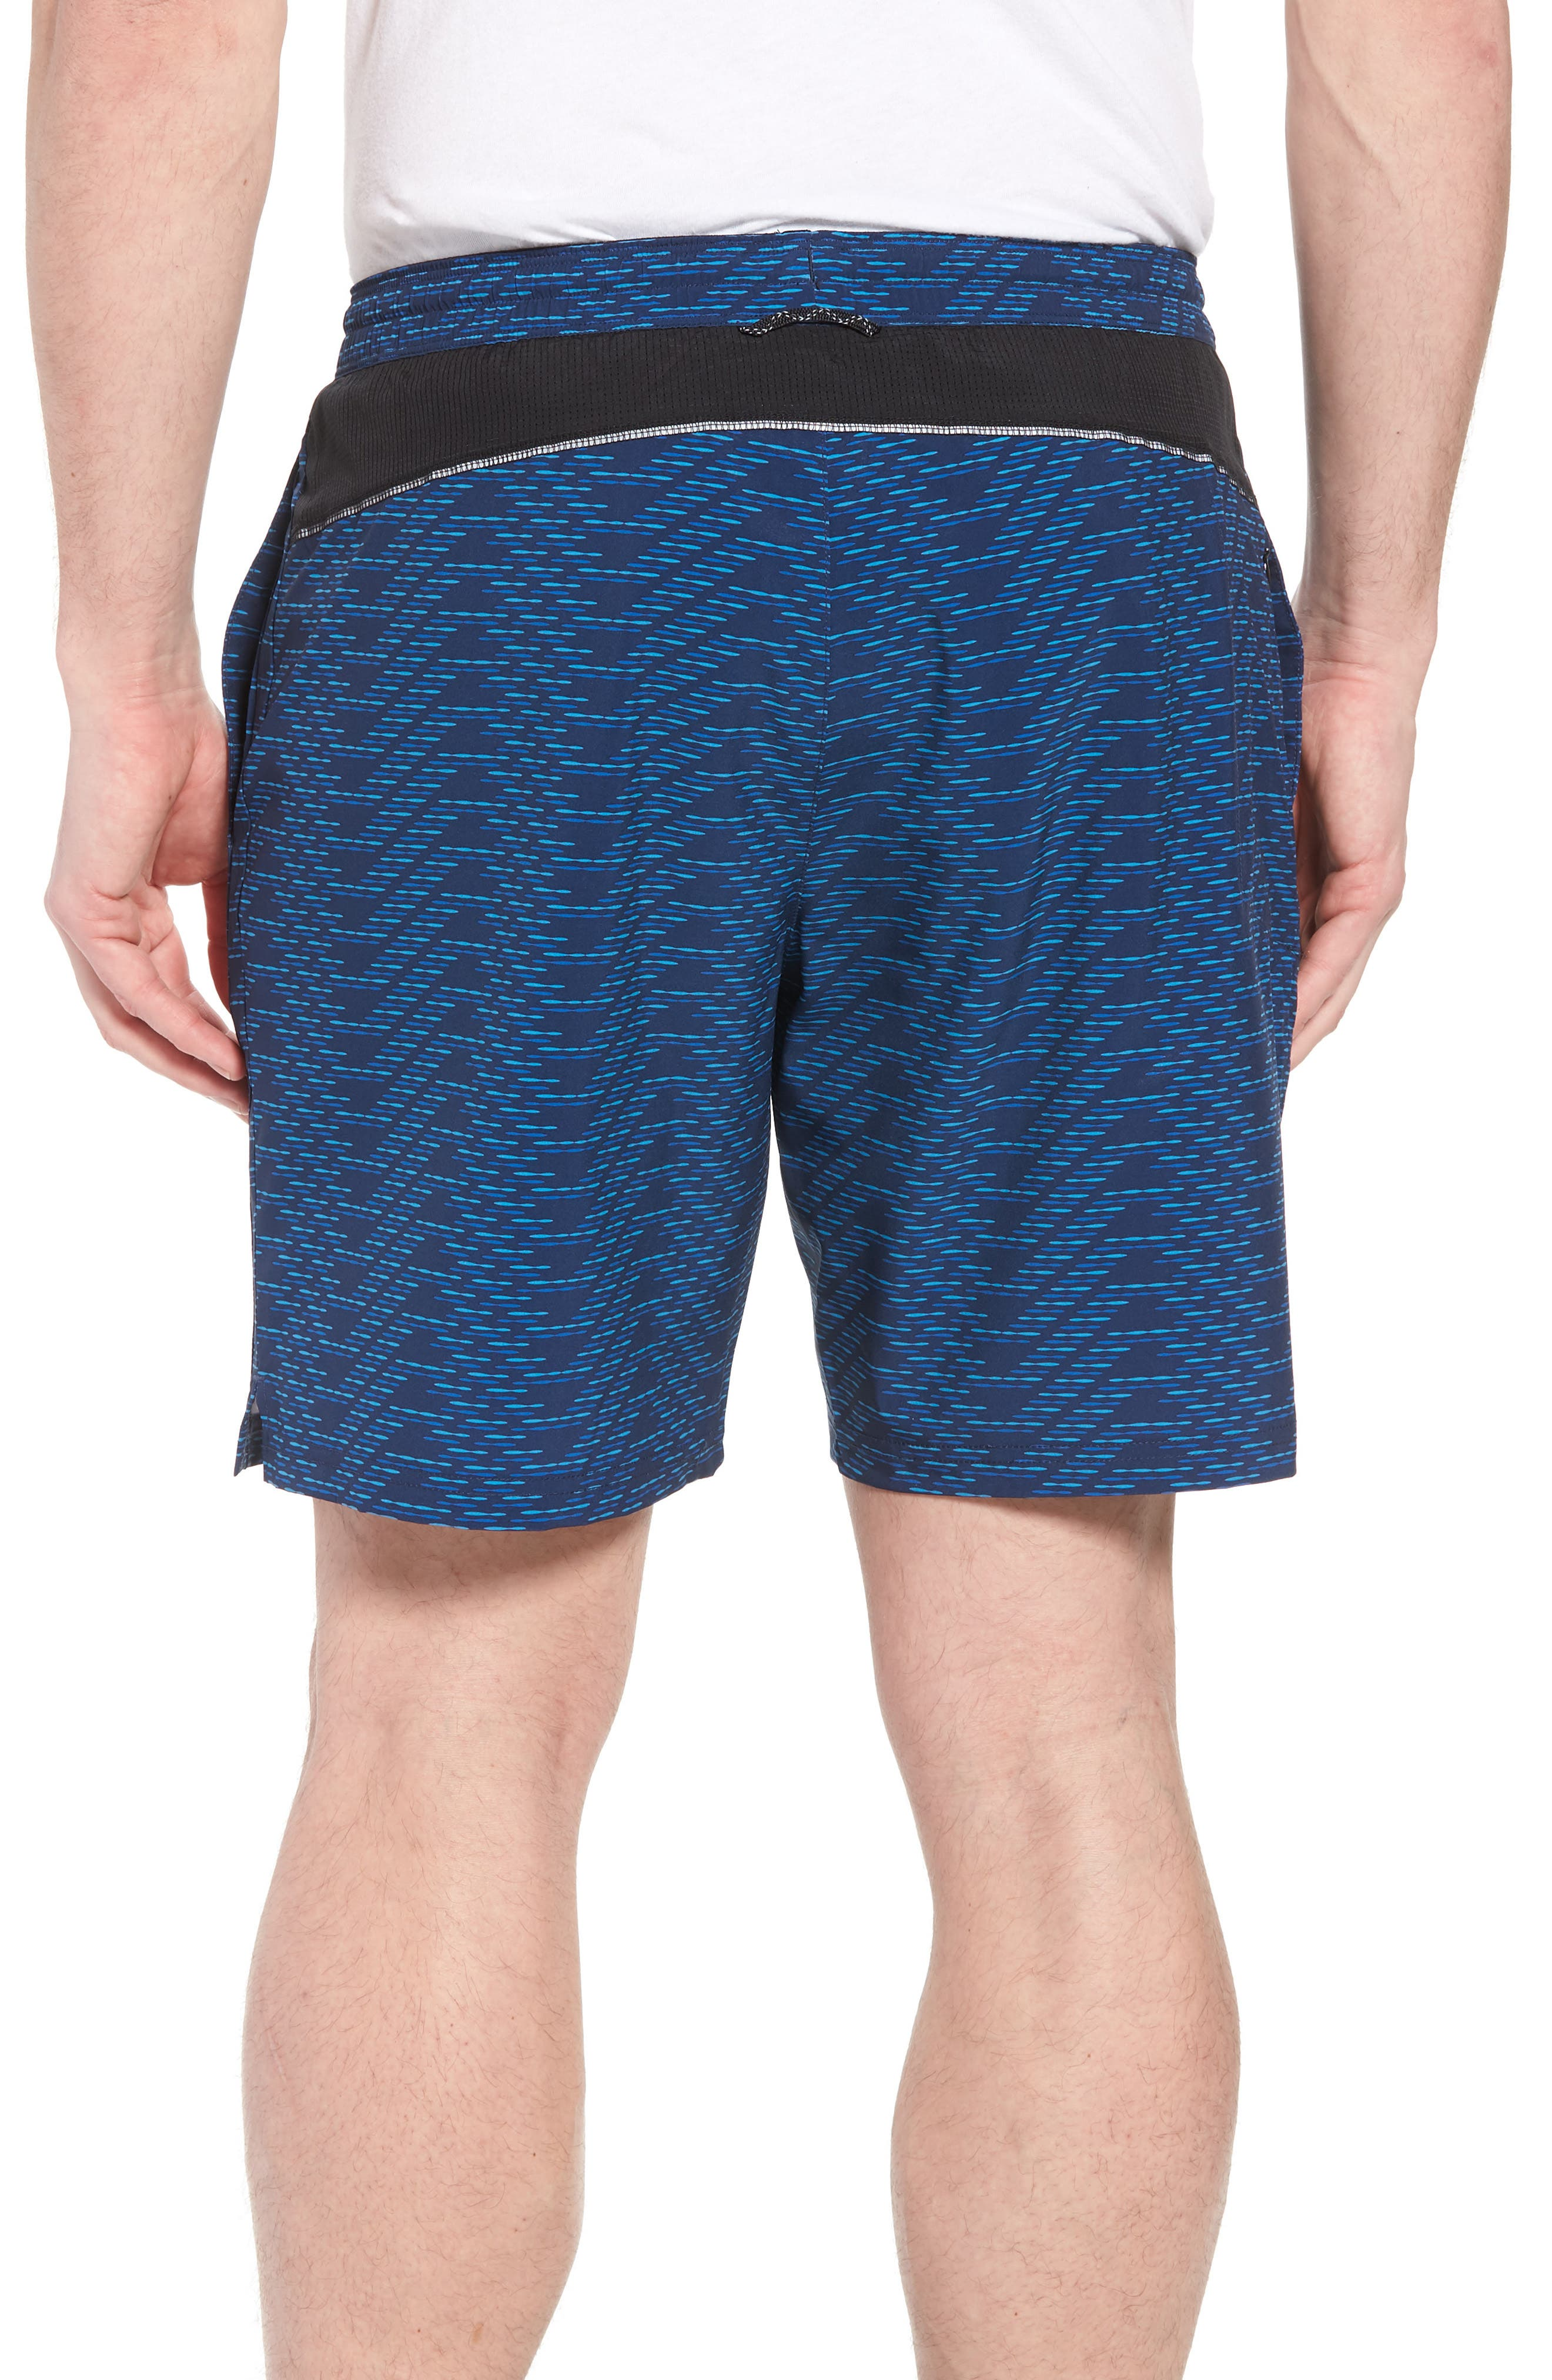 Stretch Shorts,                             Alternate thumbnail 2, color,                             400